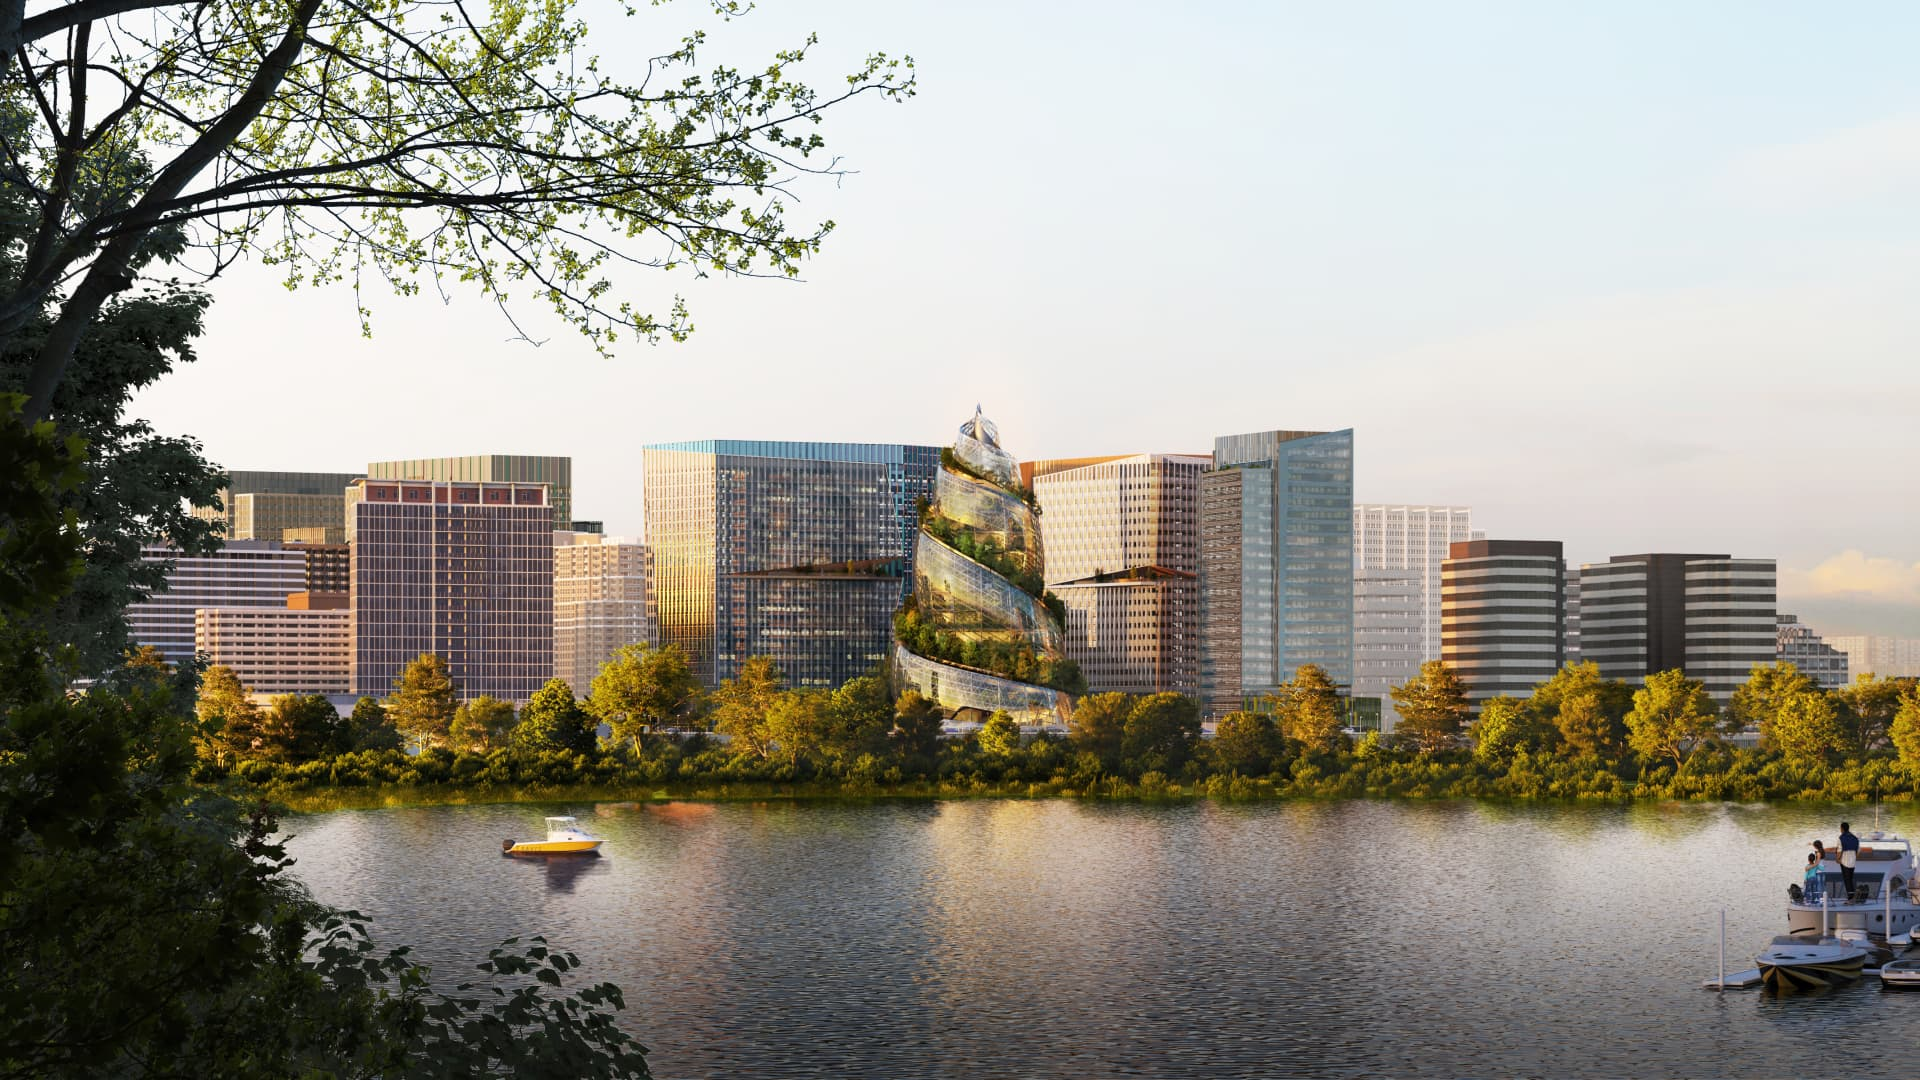 Amazon unveiled new renderings of its Arlington, Virginia headquarters, which include The Helix, a uniquely designed 350-foot-tall tower.